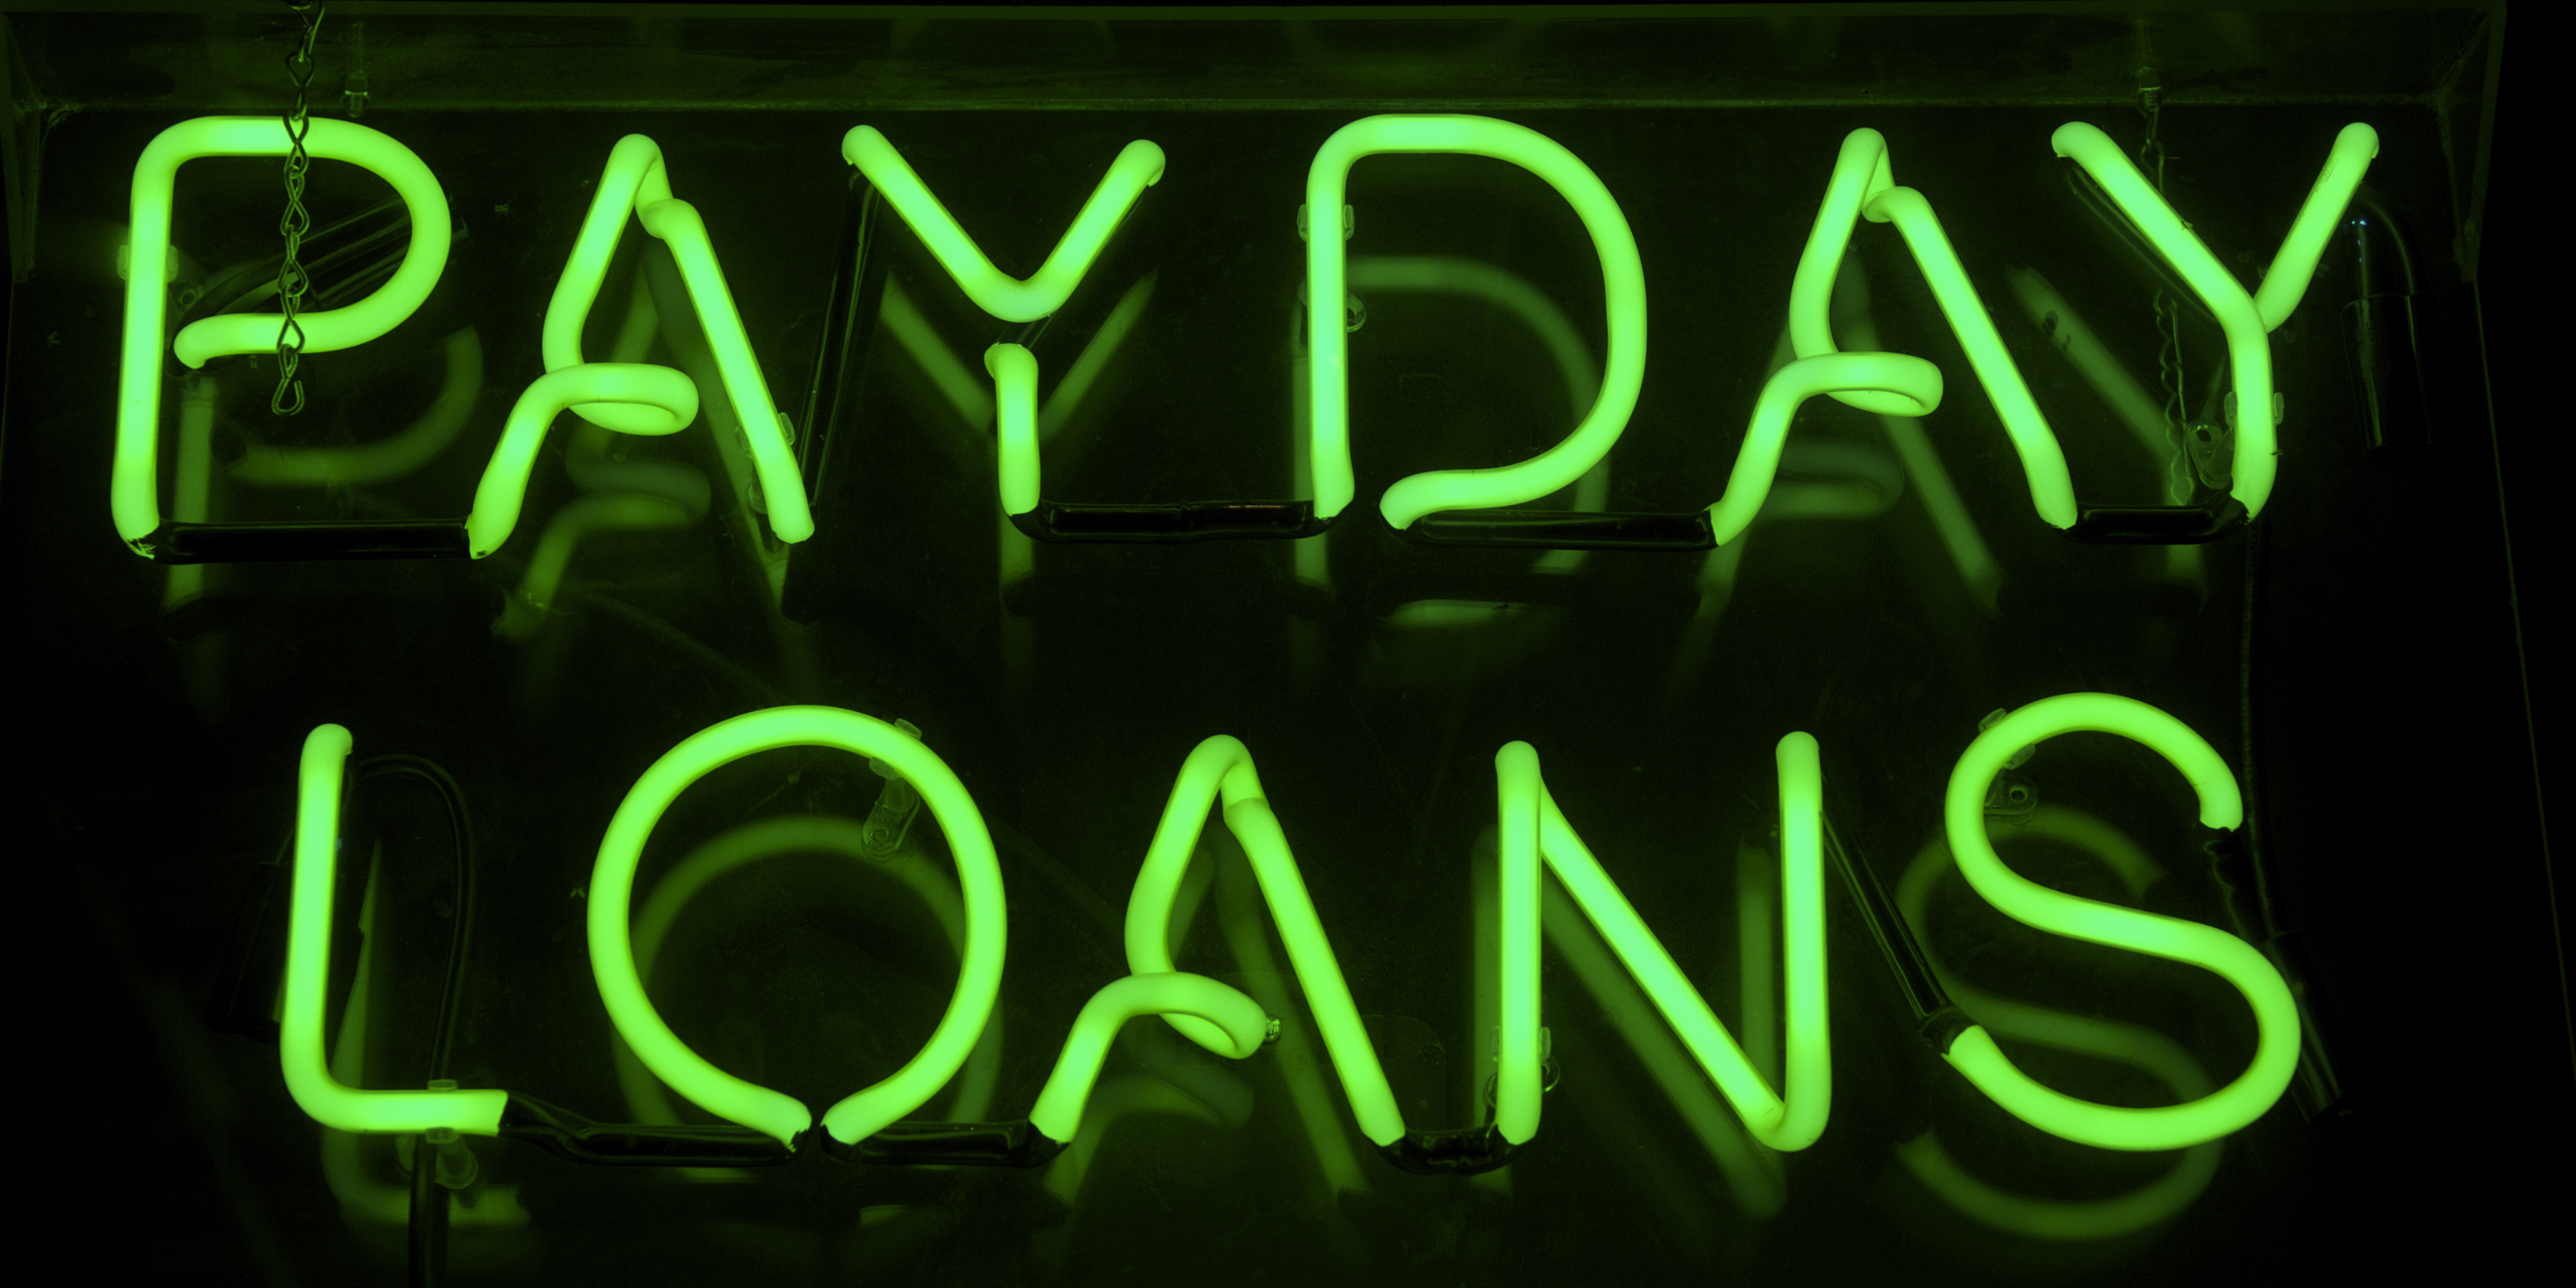 Payday Loans sign glows in green neon message on a black background